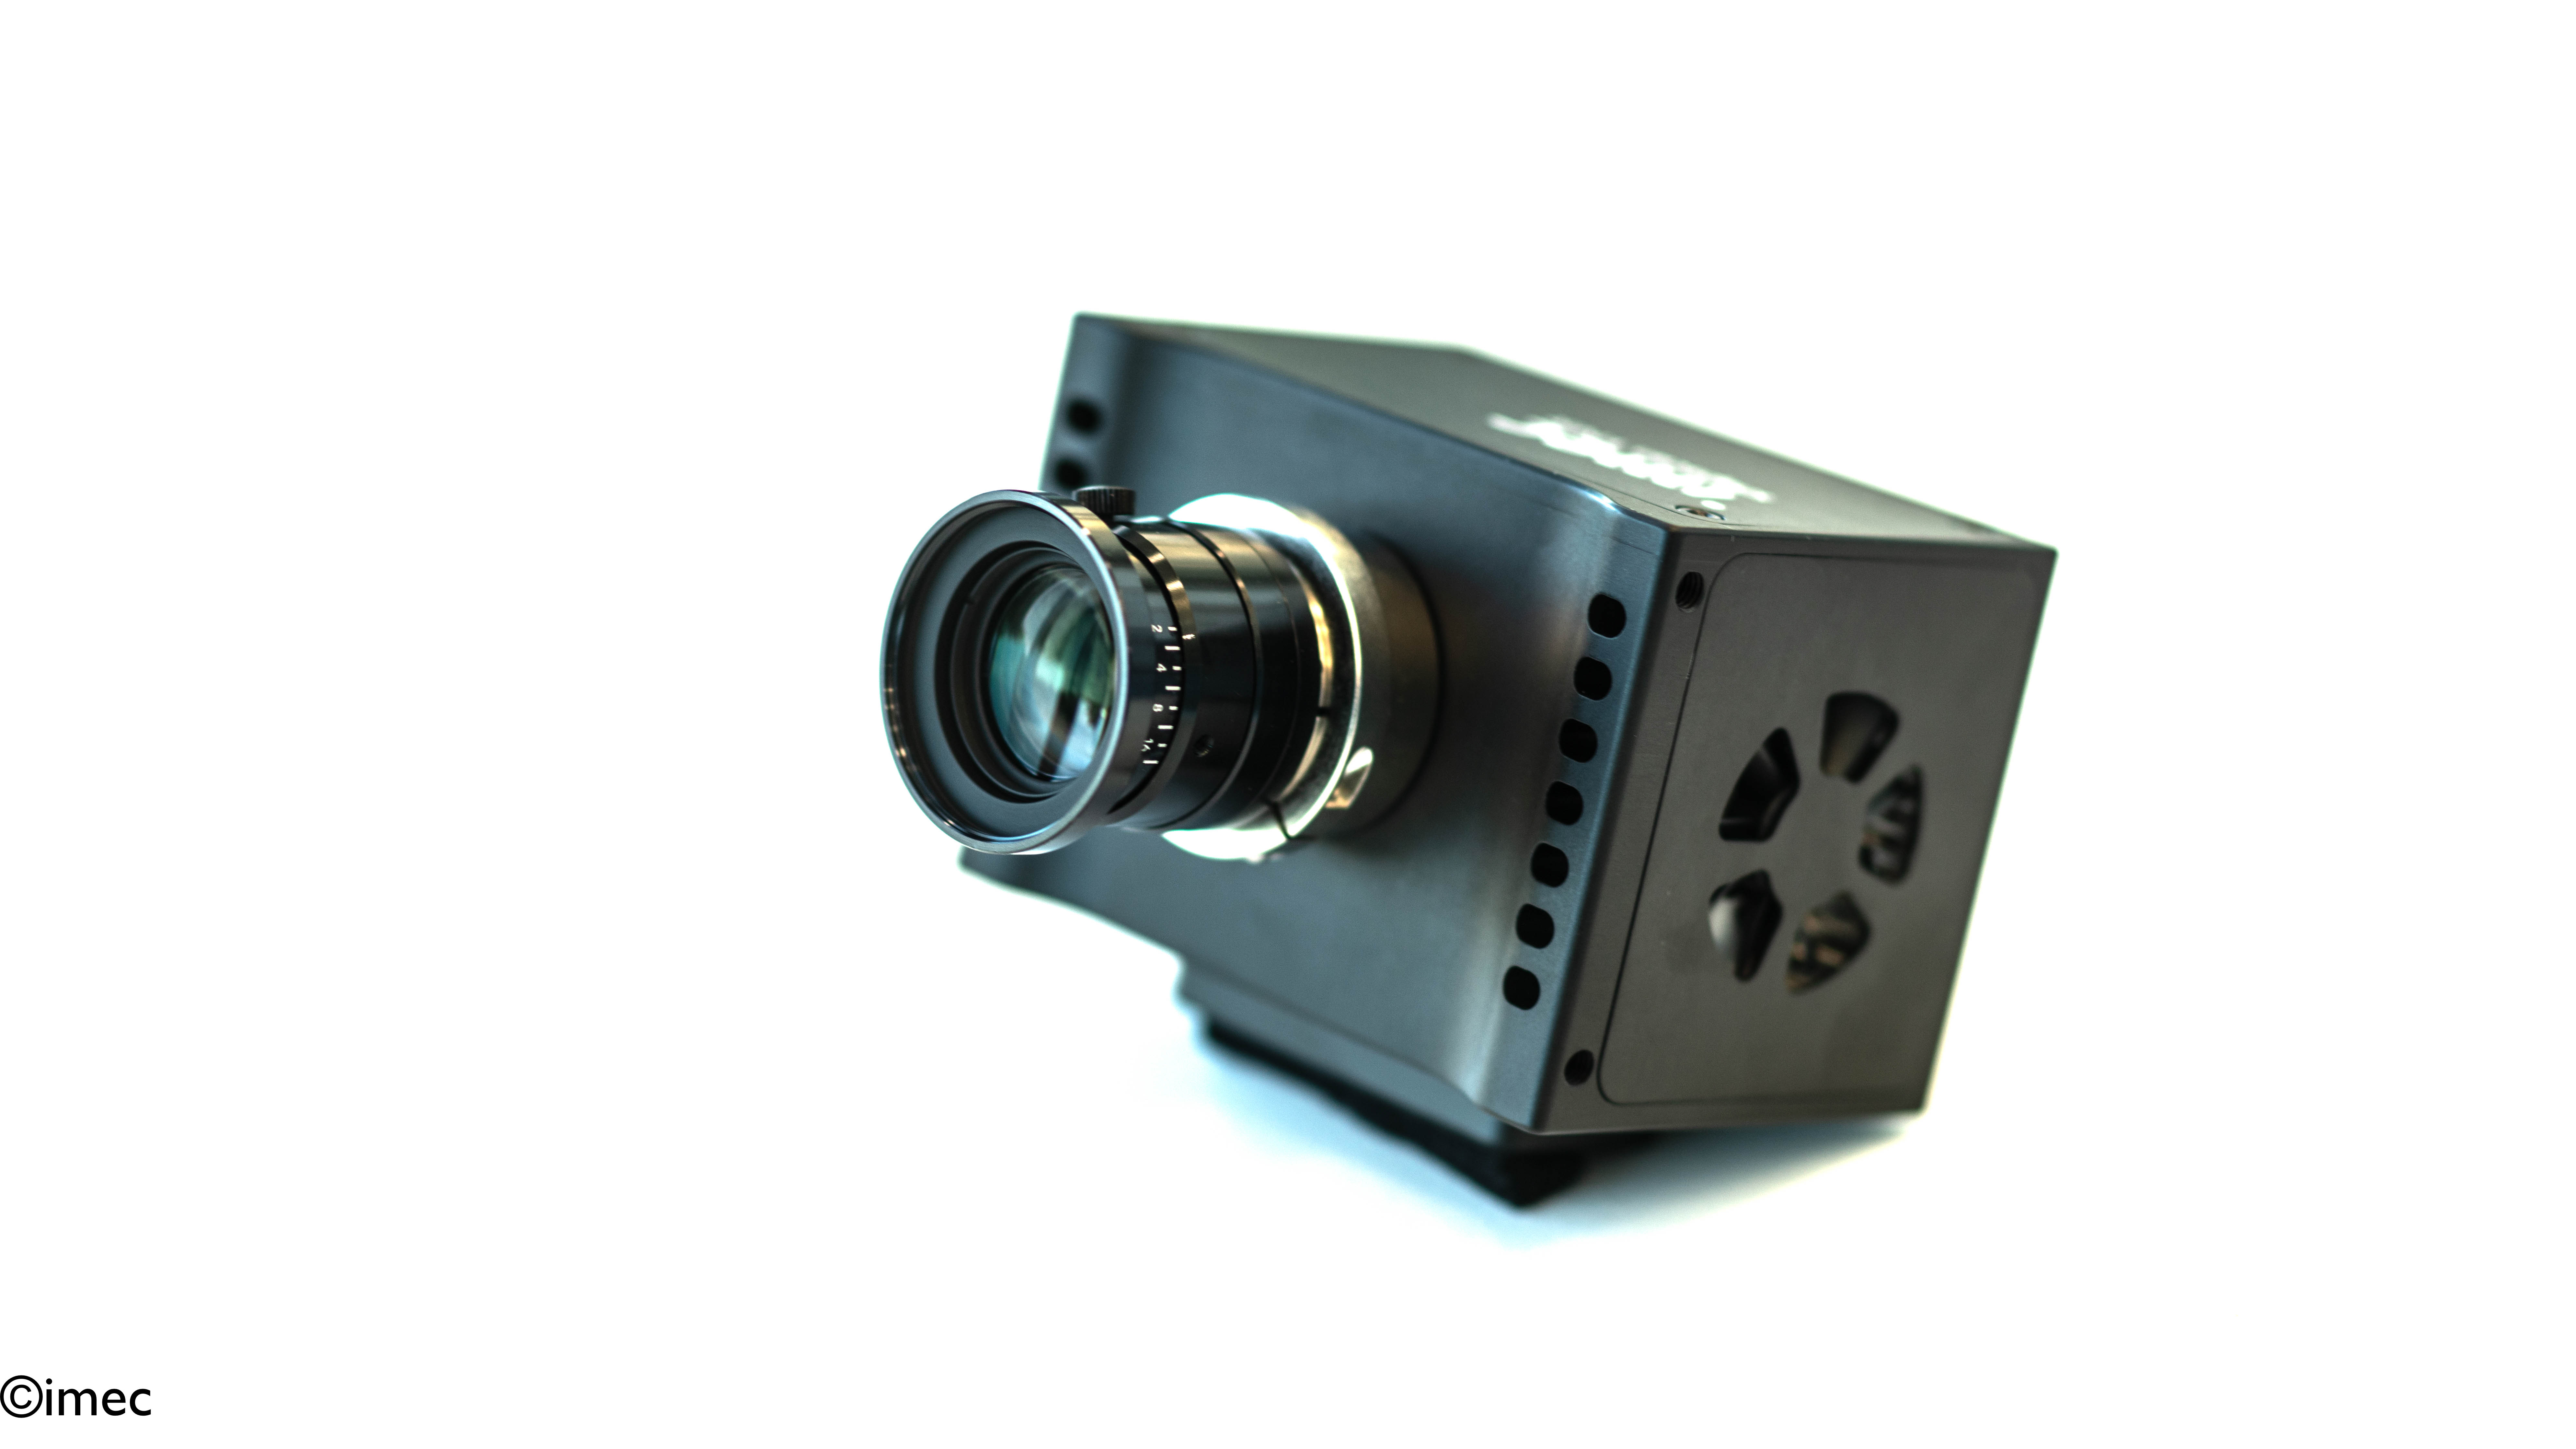 A snapscan camera for visible and near infrared imaging.